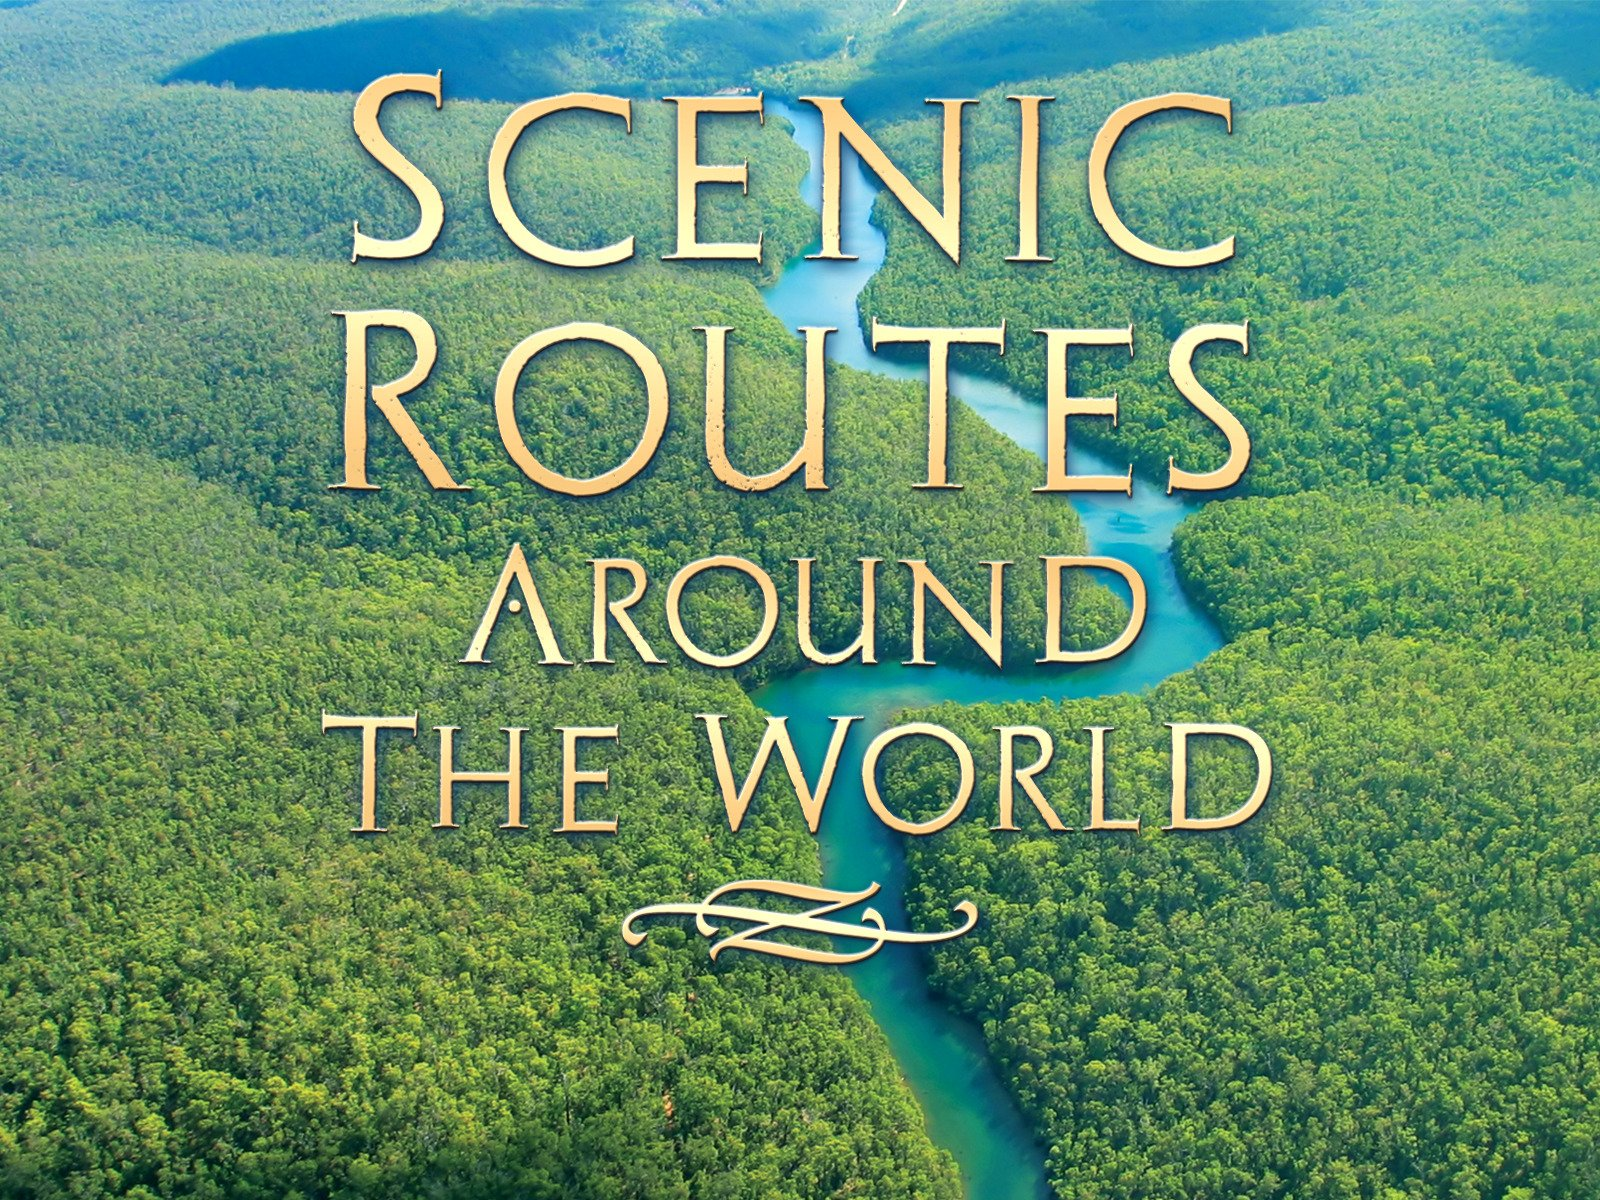 Scenic Routes Around the World - Season 1